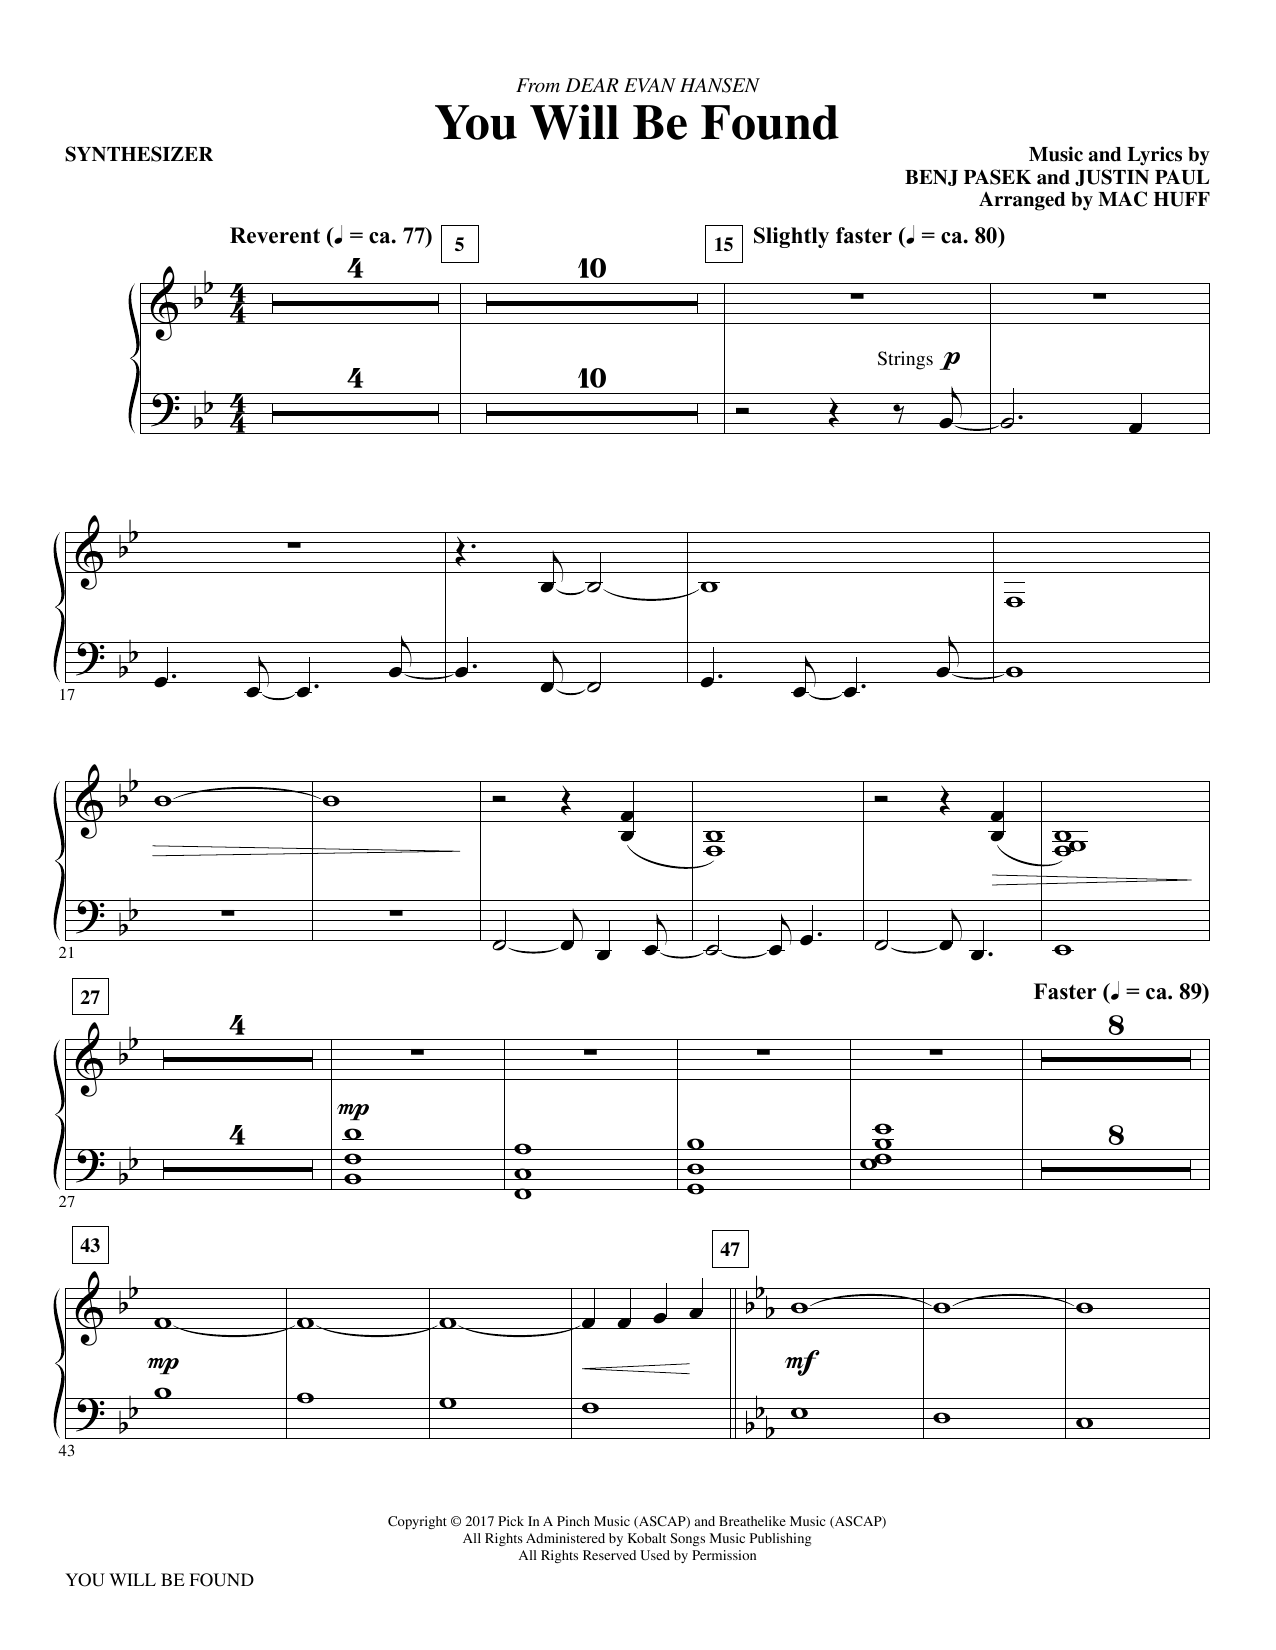 You Will Be Found (from Dear Evan Hansen) (arr. Mac Huff) - Synthesizer Sheet Music